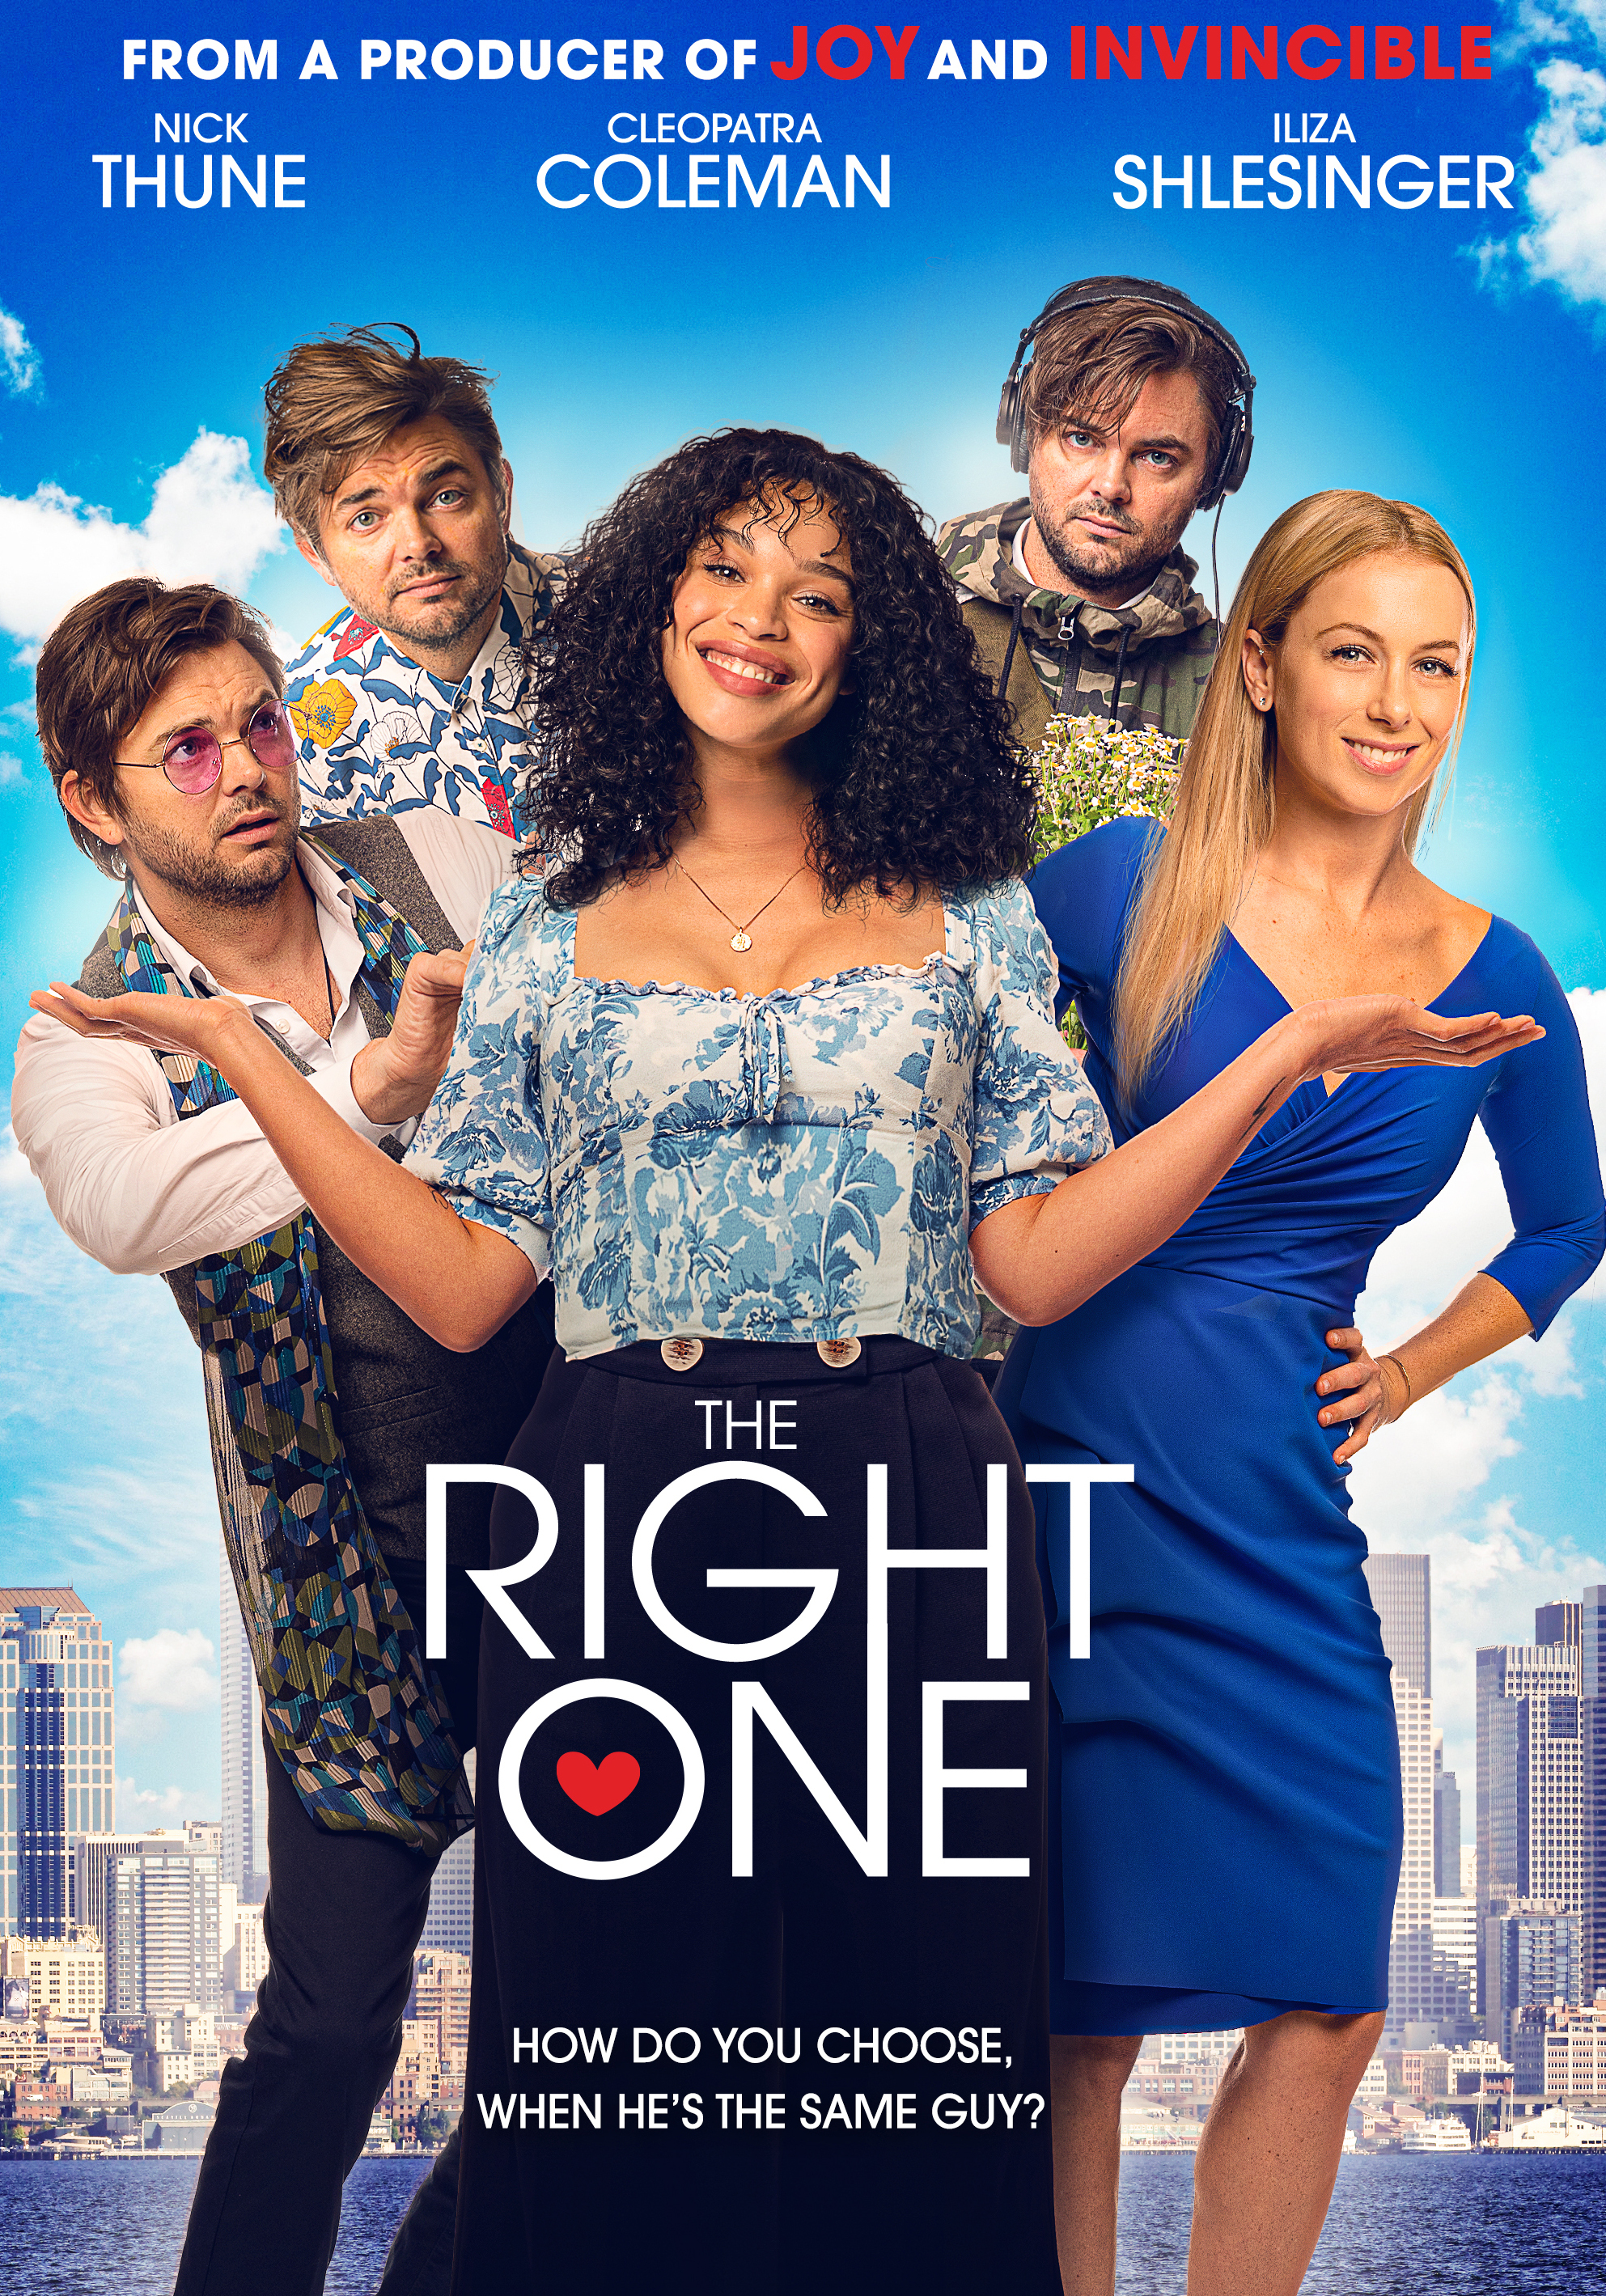 The Right One hd on soap2day